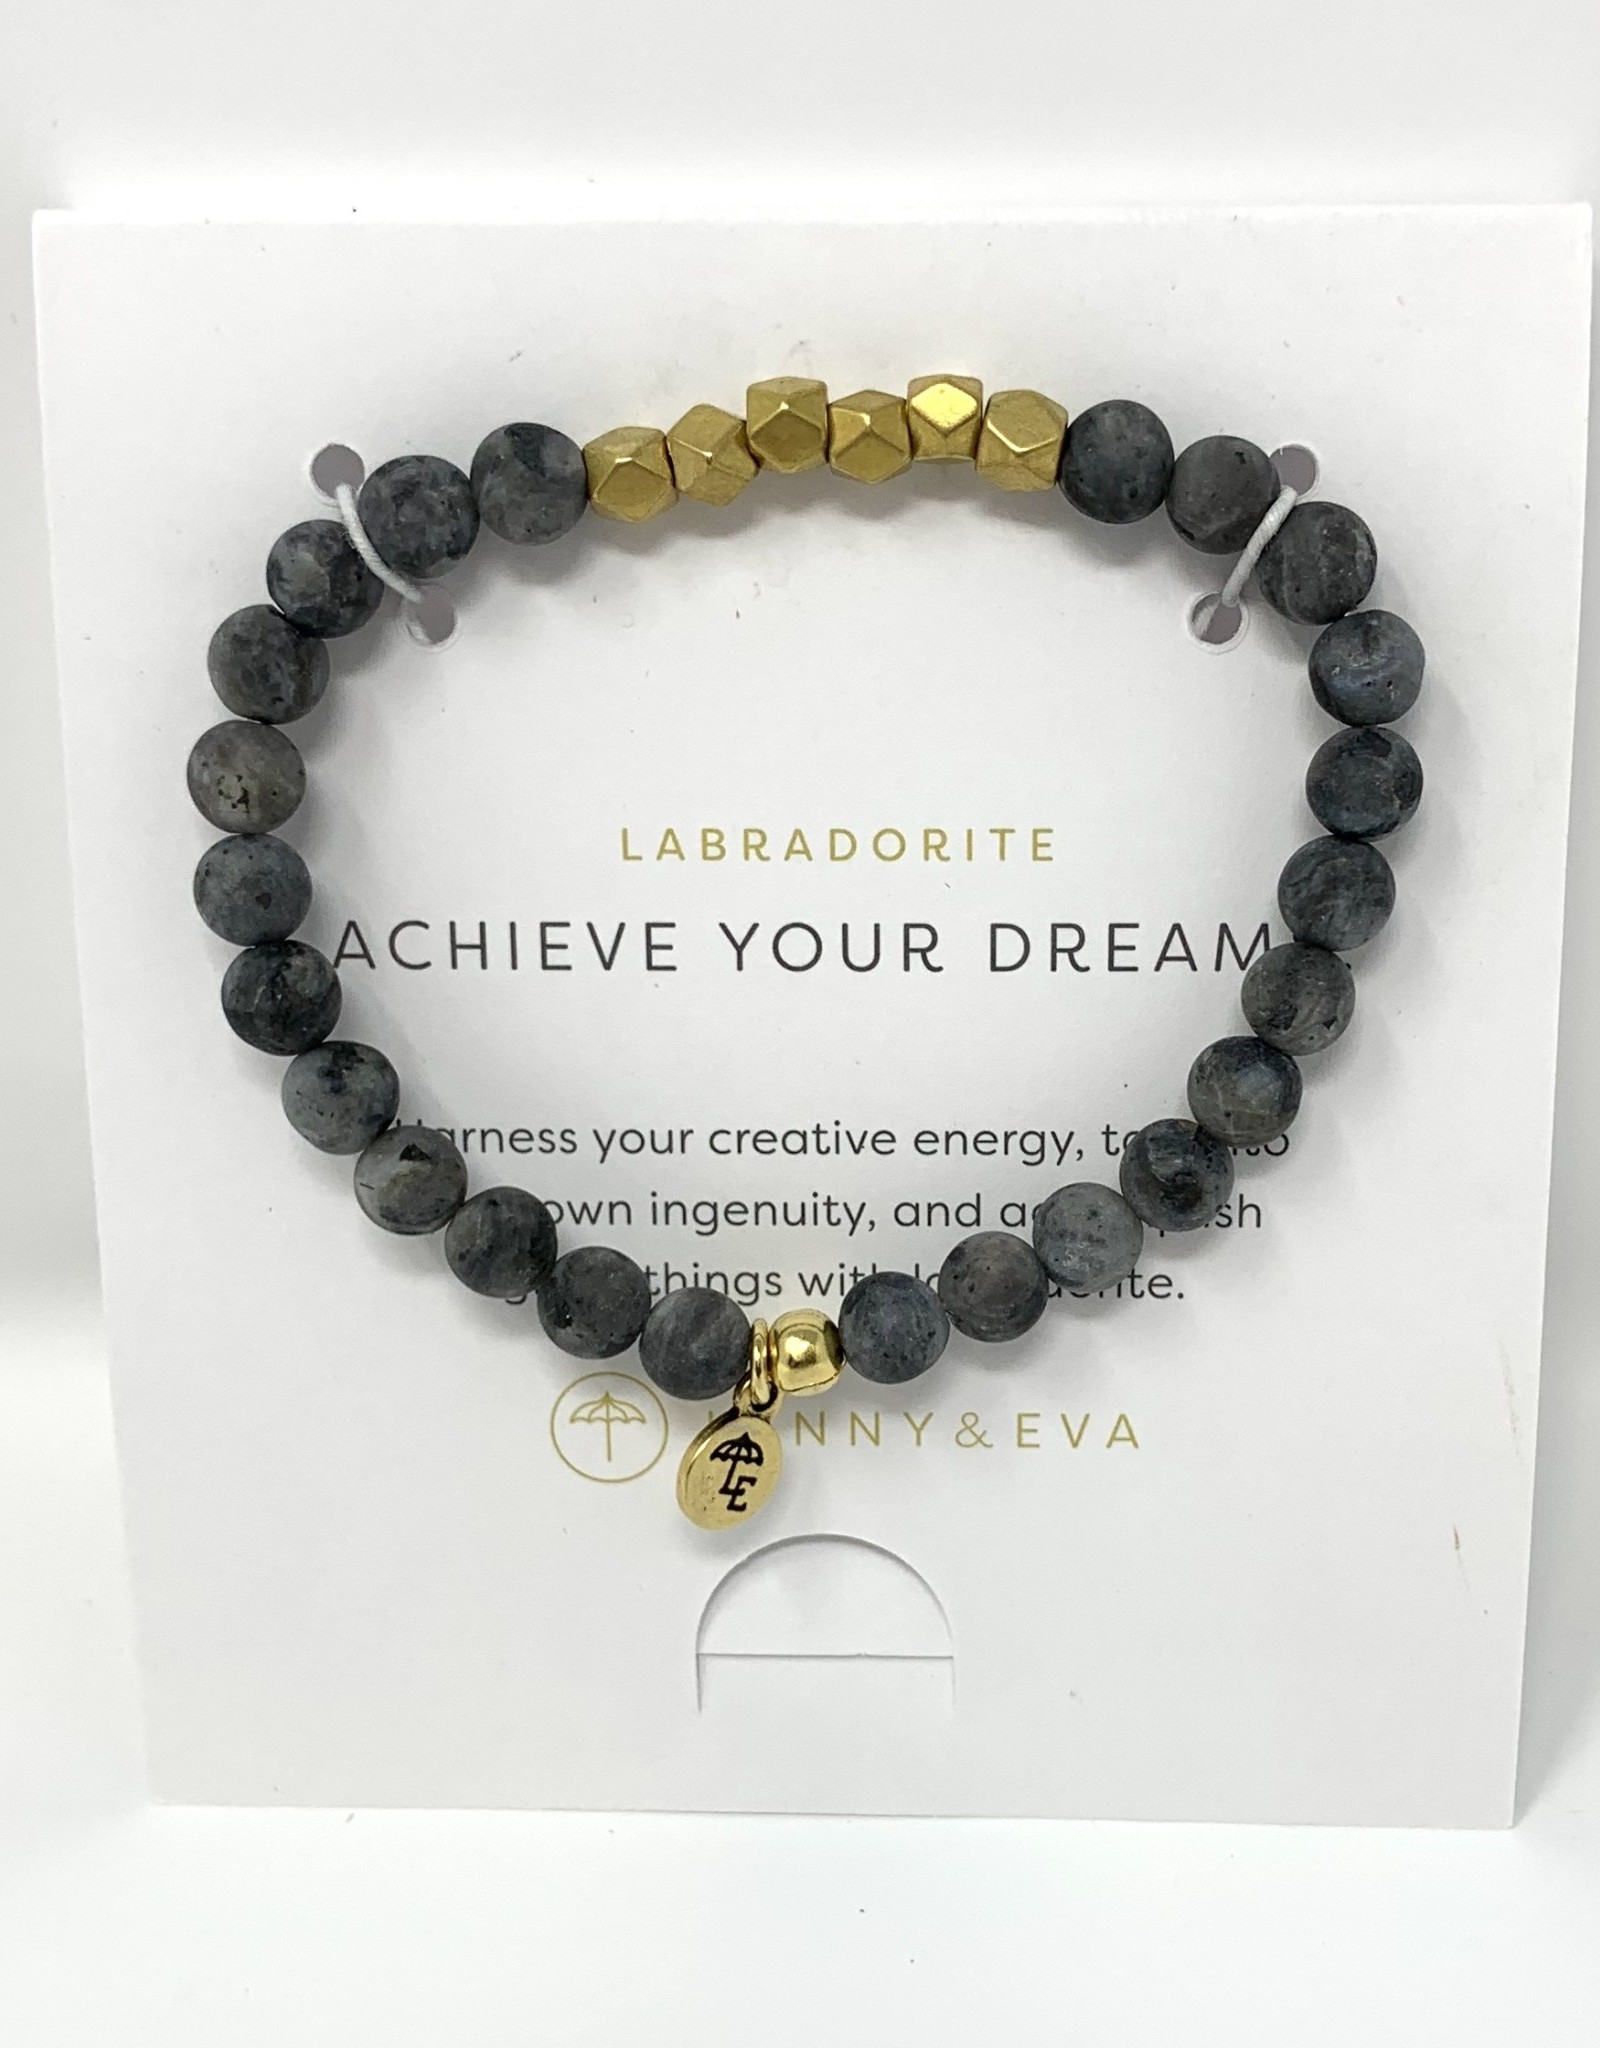 Lenny & Eva Gemstone Bracelet Labradorite Achieve Your Dreams